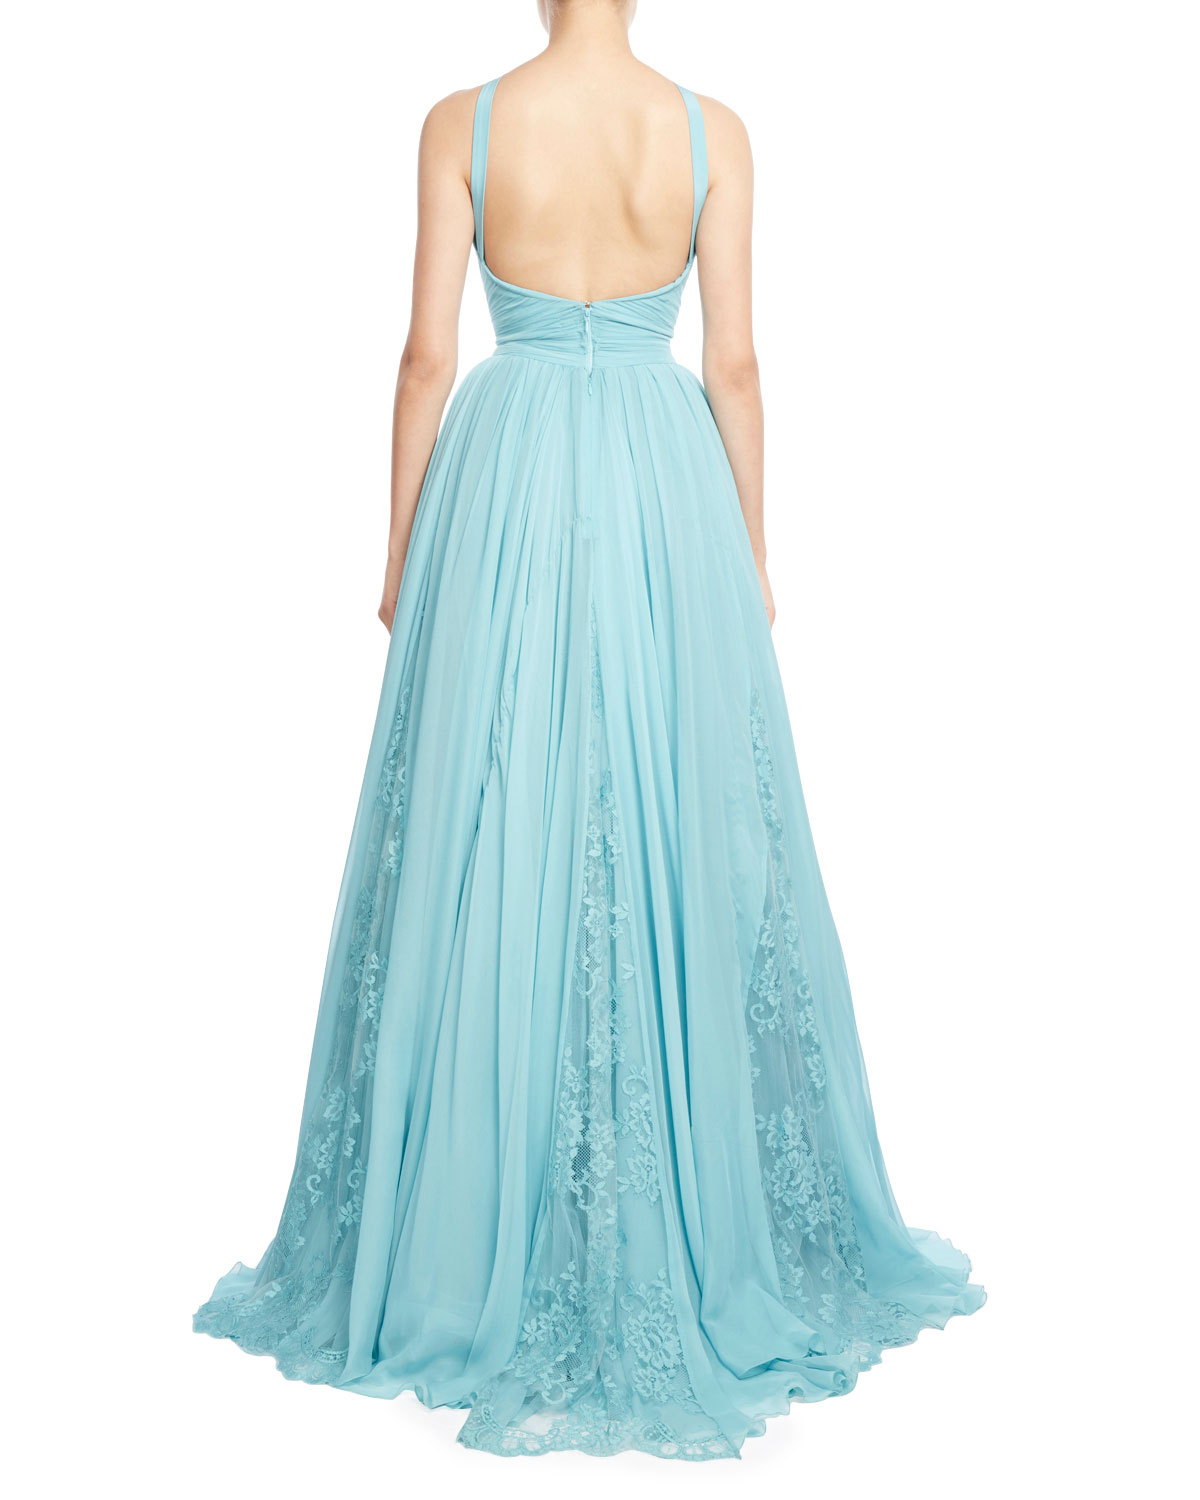 Zuhair Murad Draped Georgette Gown with Lace Insets, Blue   Neiman ...